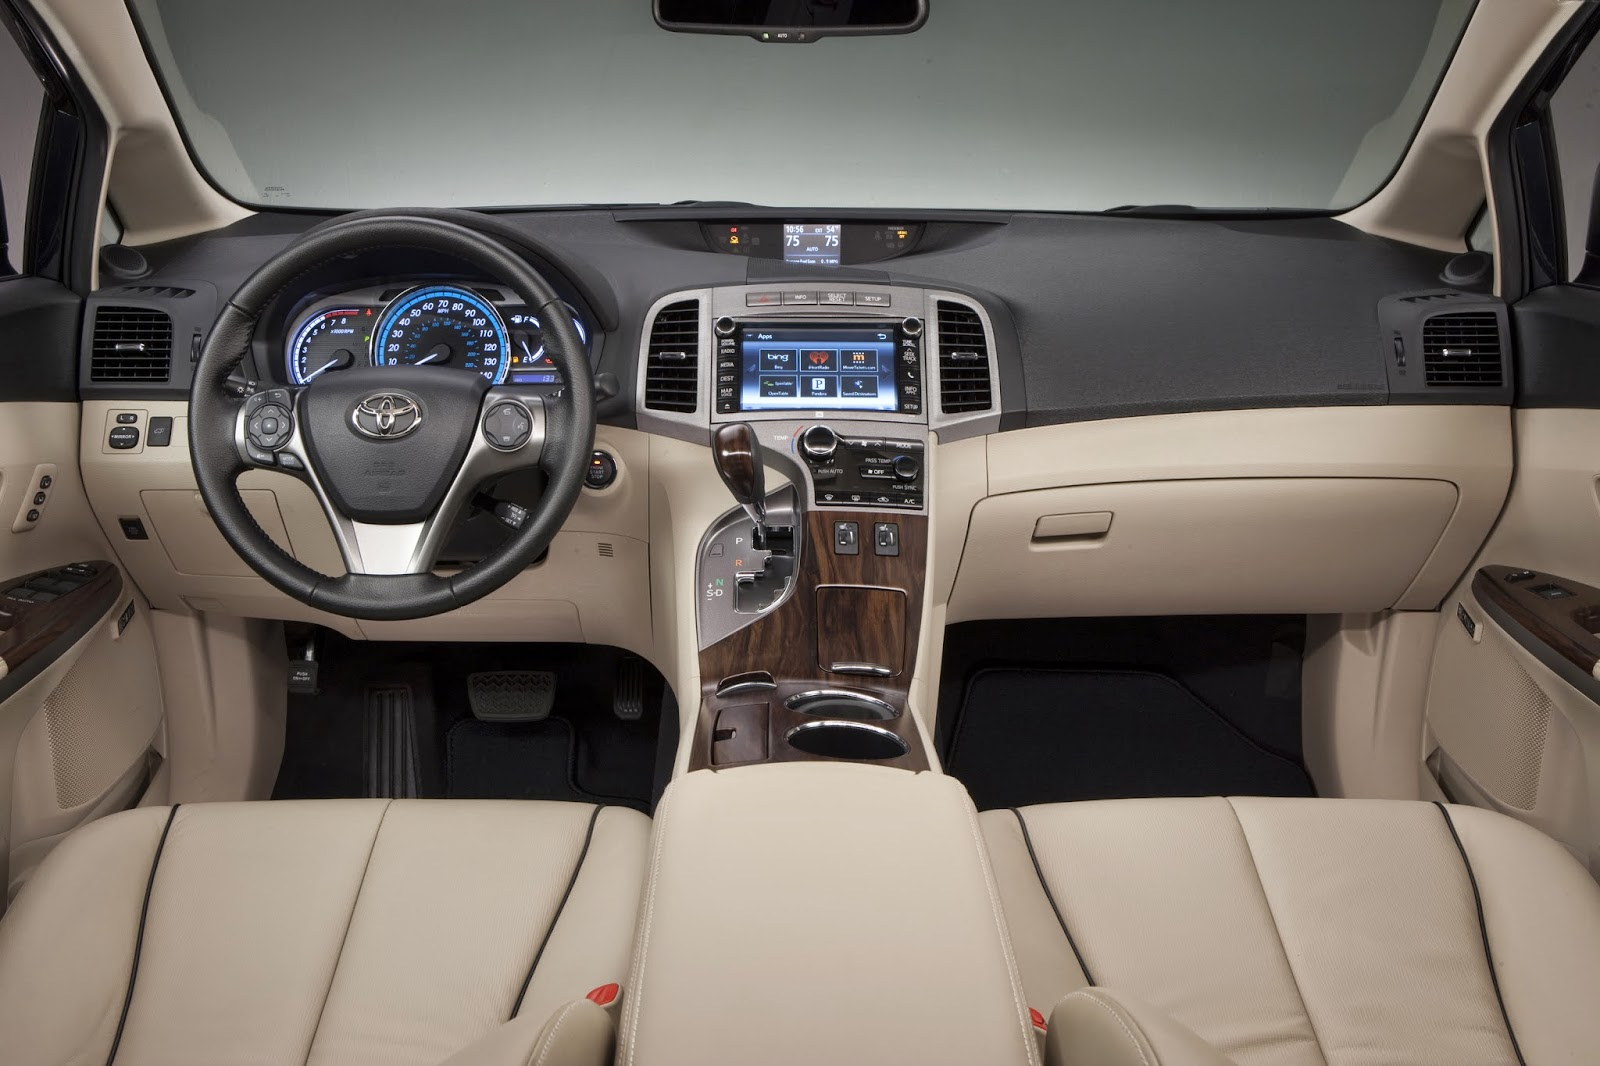 Interior view of 2014 Toyota Venza